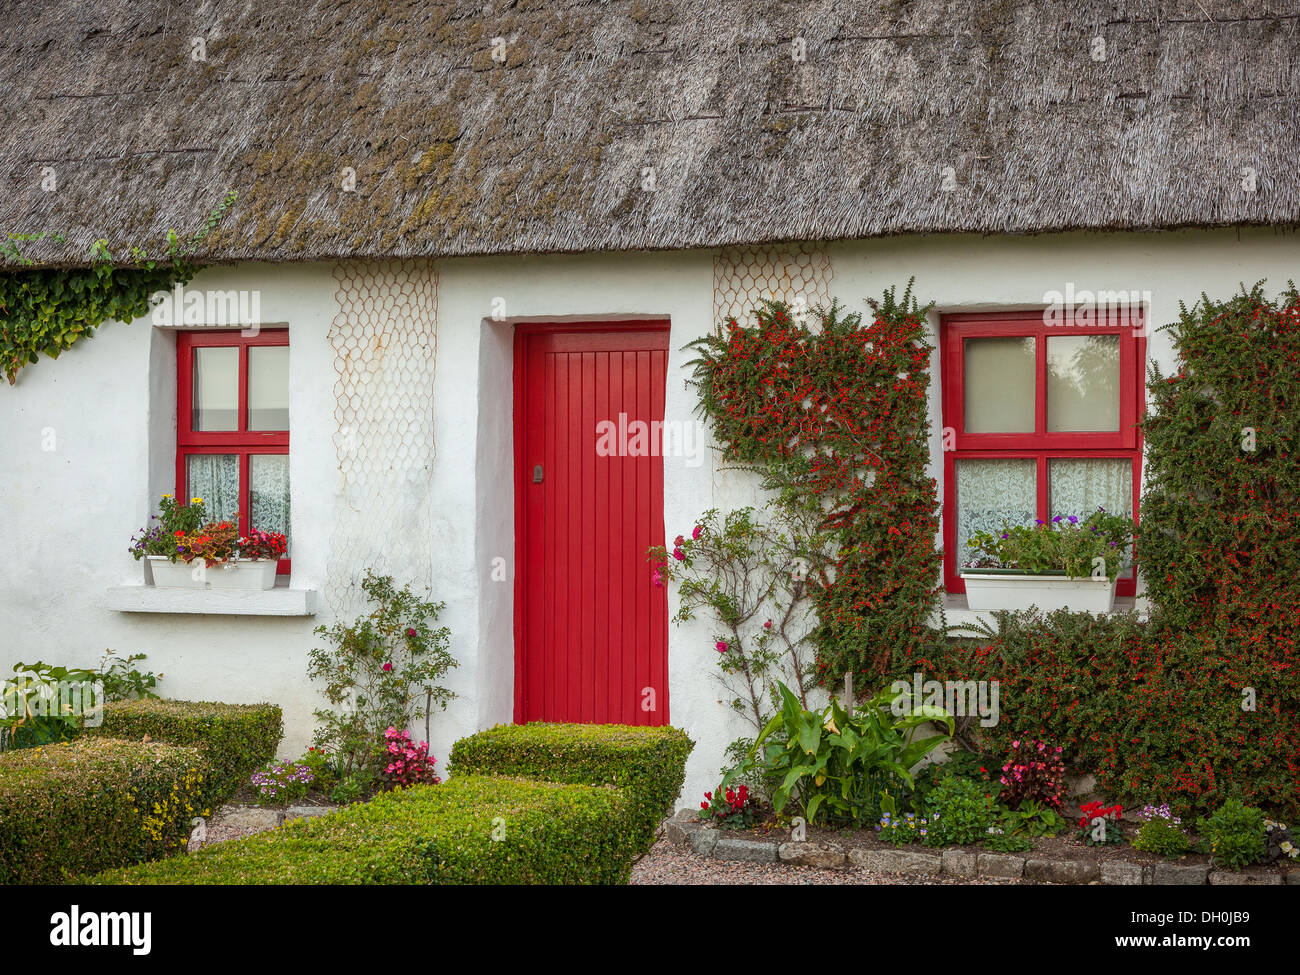 County Galway Ireland Thatched roof cottage with red doors and windows. & County Galway Ireland: Thatched roof cottage with red doors and ...